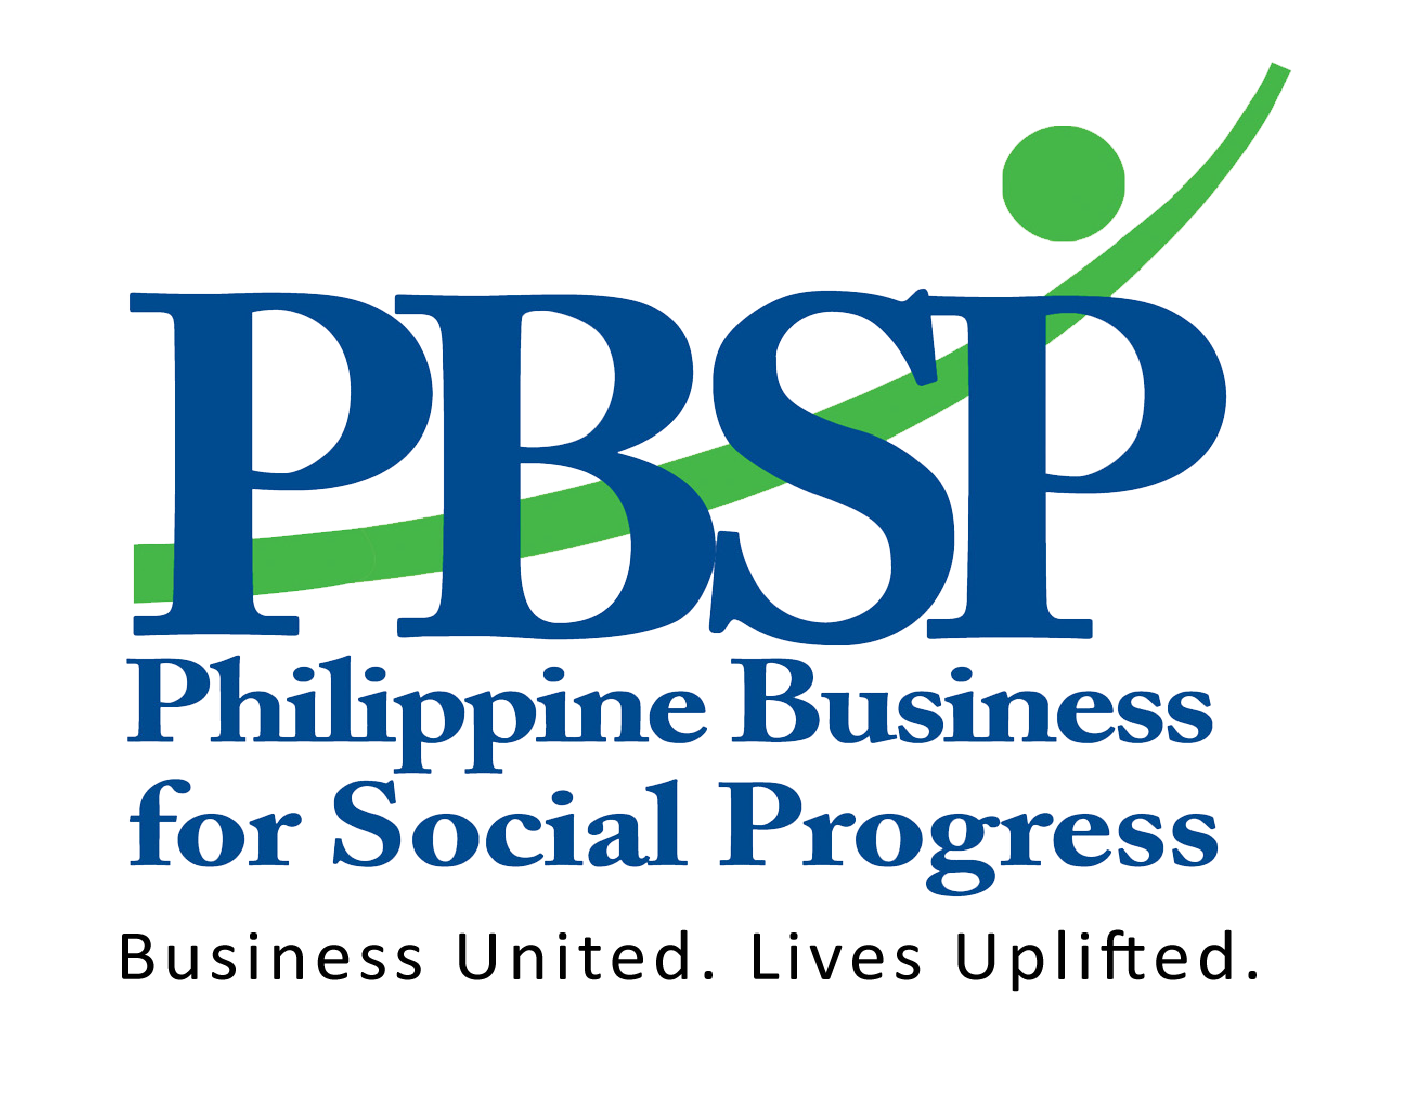 Philippine Business for Social Progress (logo)